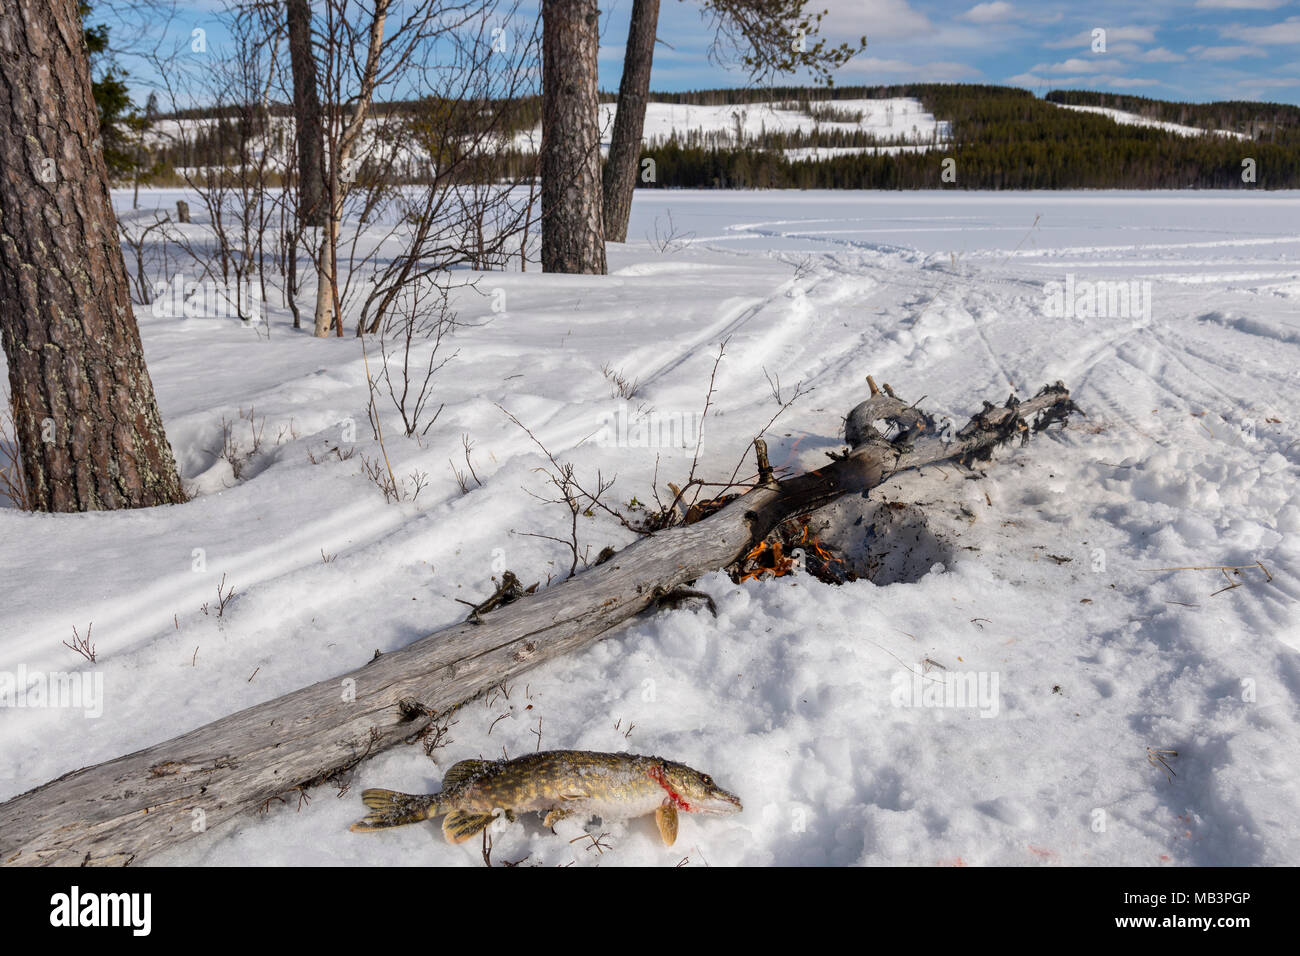 Dead pike and a campfire in the foreground in winter landscape and blue sky and mountain in background, picture from the Northern Sweden. - Stock Image